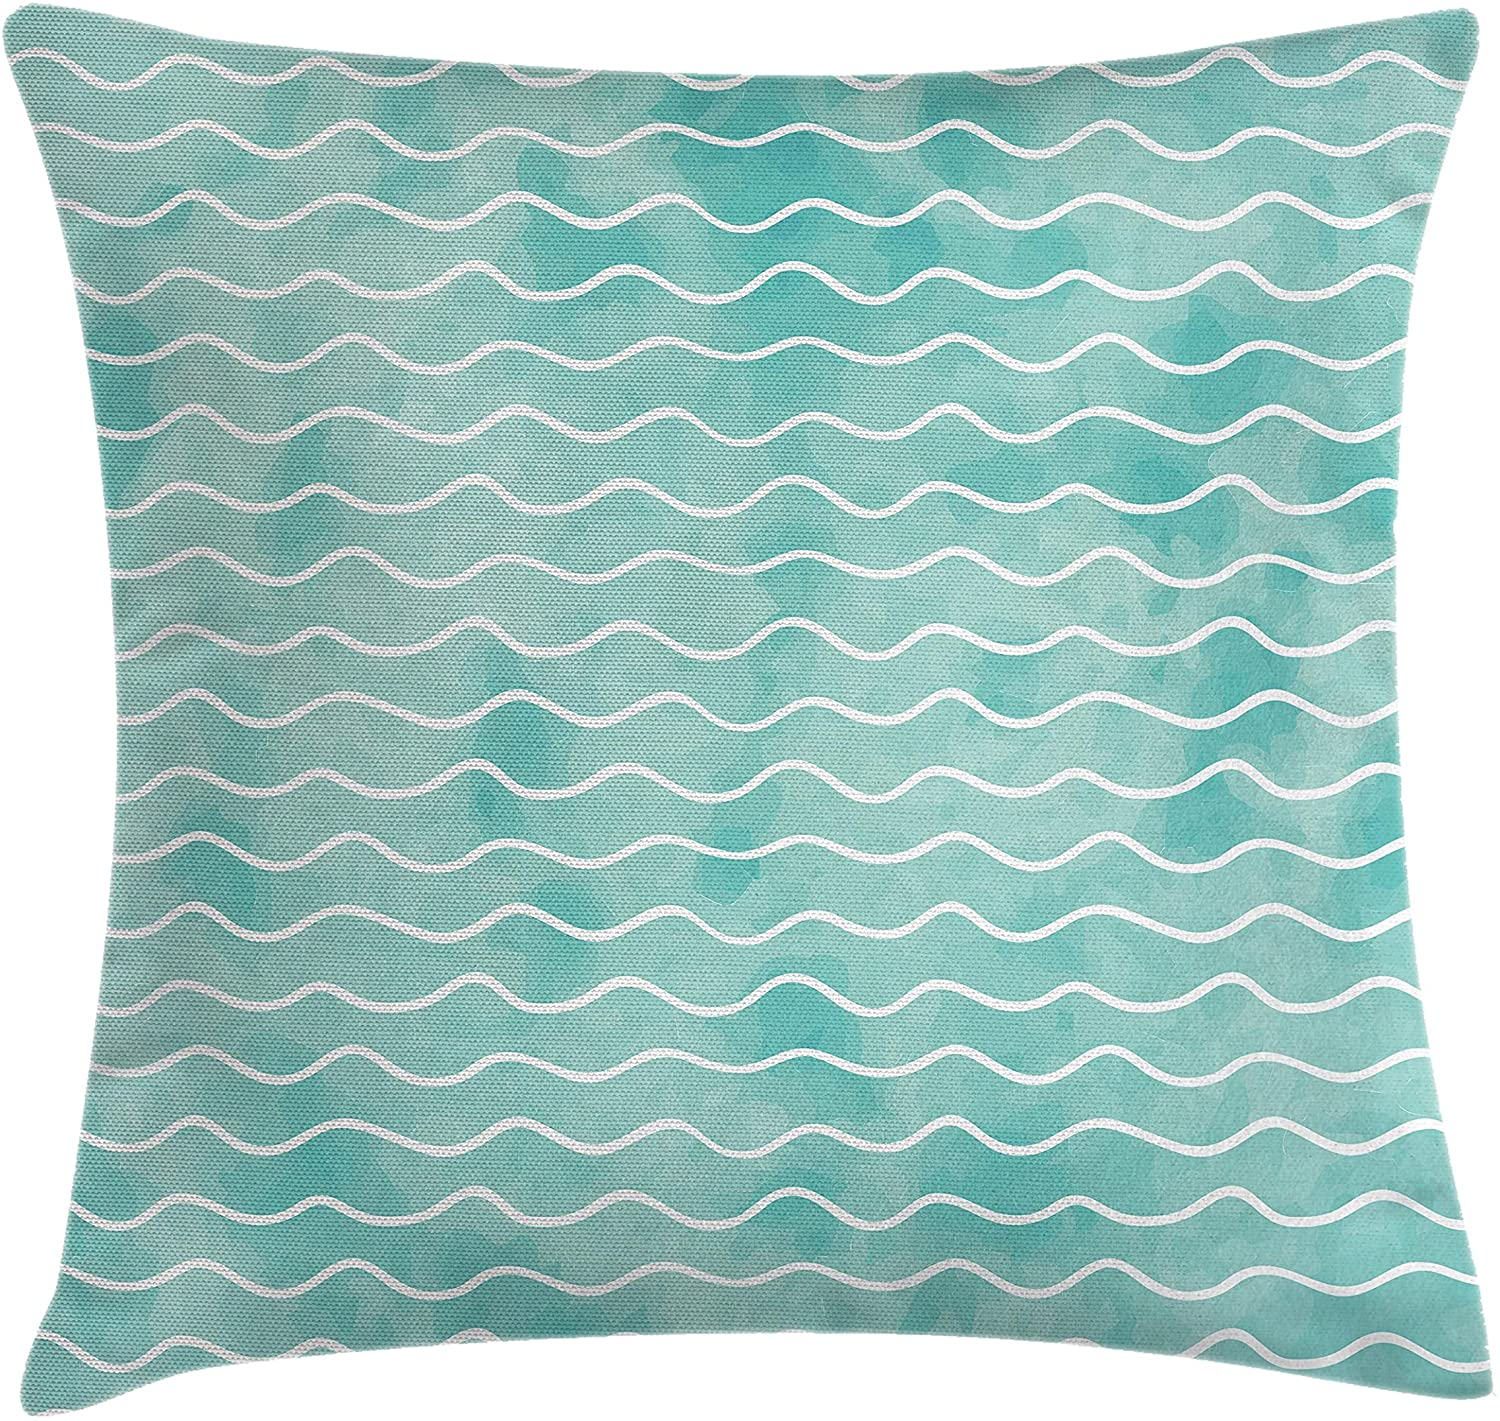 Ambesonne Nautical Throw Pillow Cushion Cover, Soft Pastel Colored Ocean Sea Waves Pattern Summer Vibes Inspired Graphic, Decorative Square Accent Pillow Case, 24 X 24, Orange